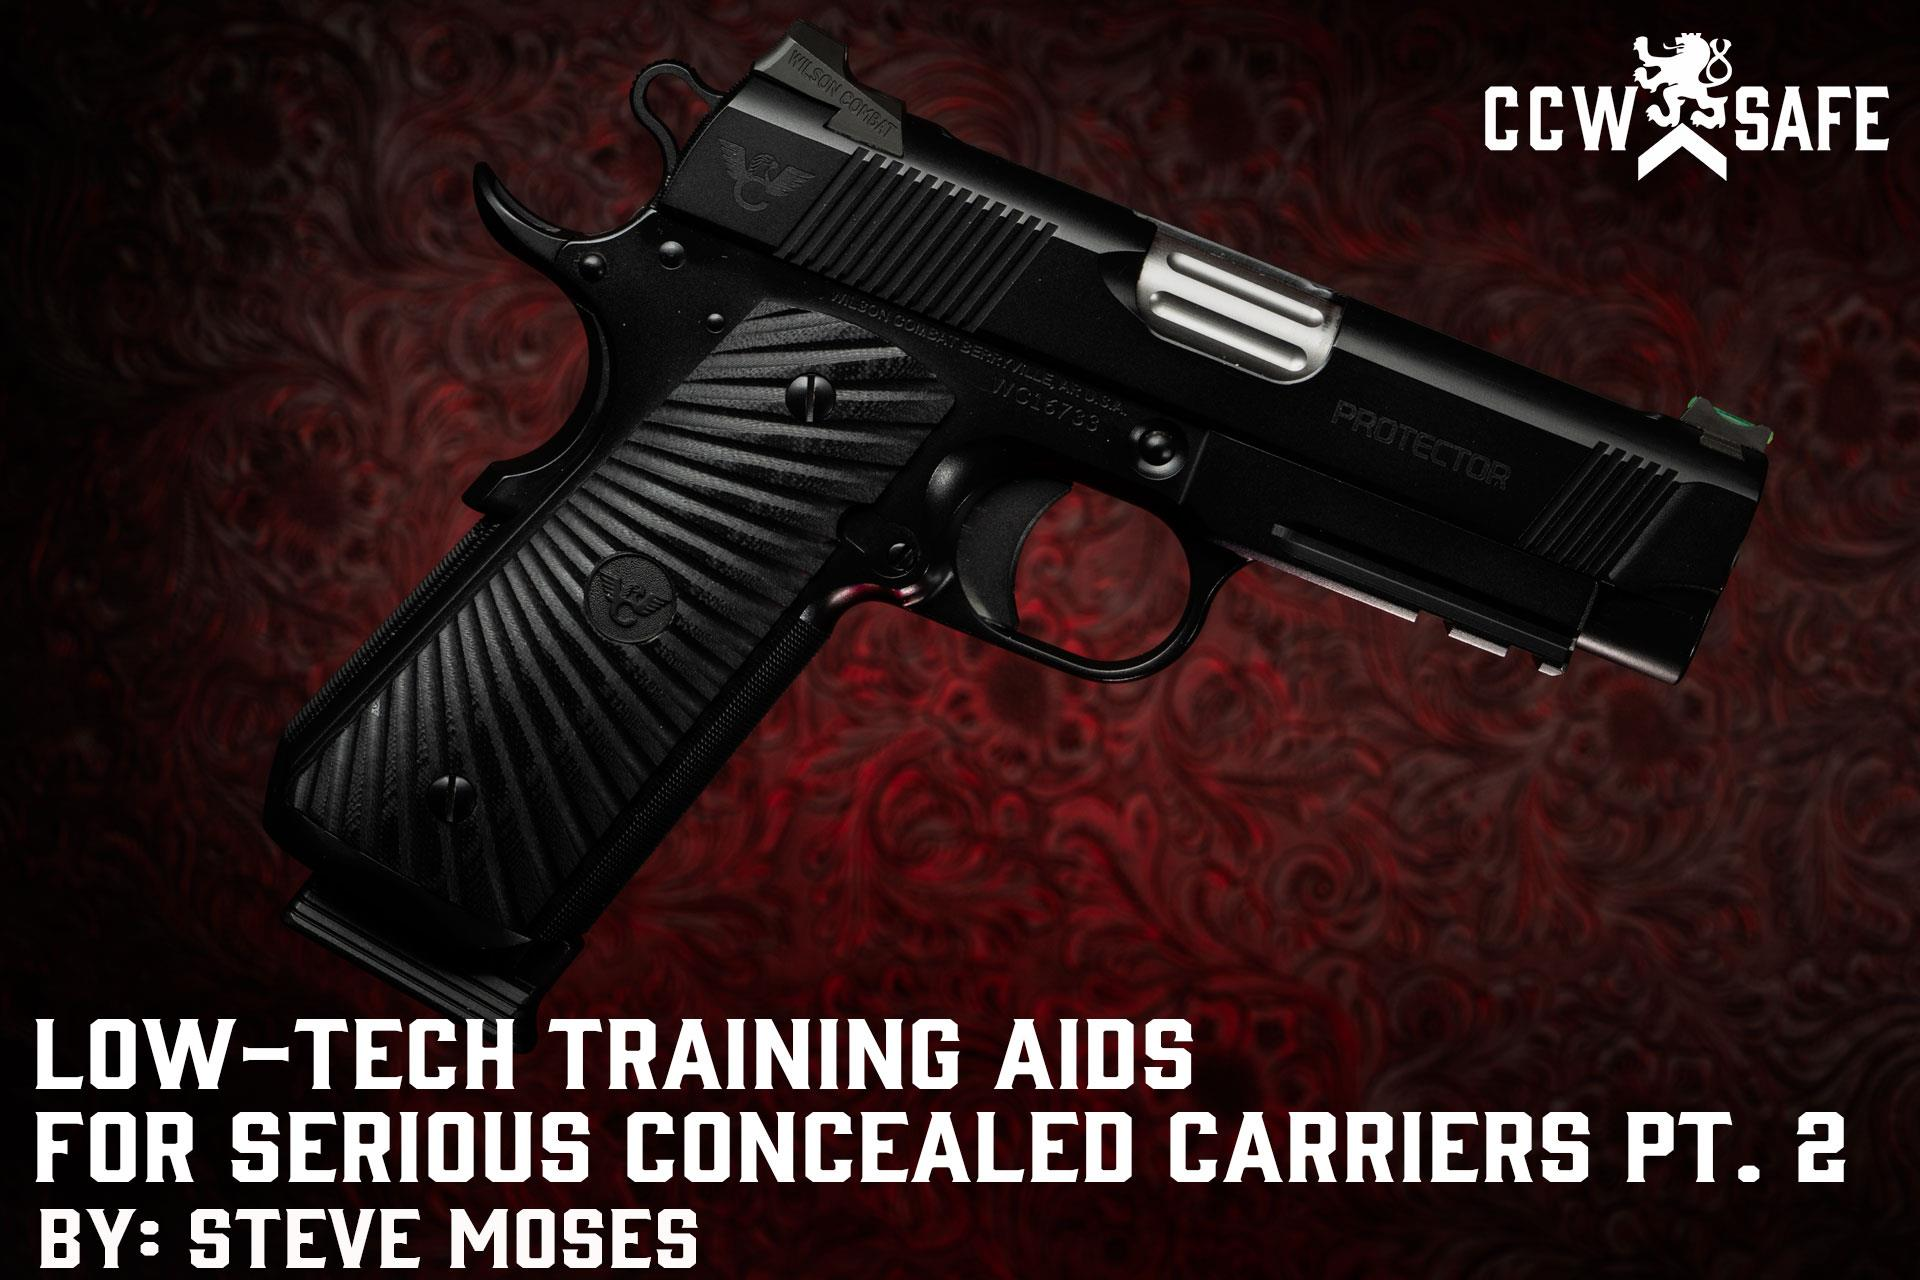 LOW-TECH TRAINING AIDS FOR SERIOUS CONCEALED CARRIERS PT. 2